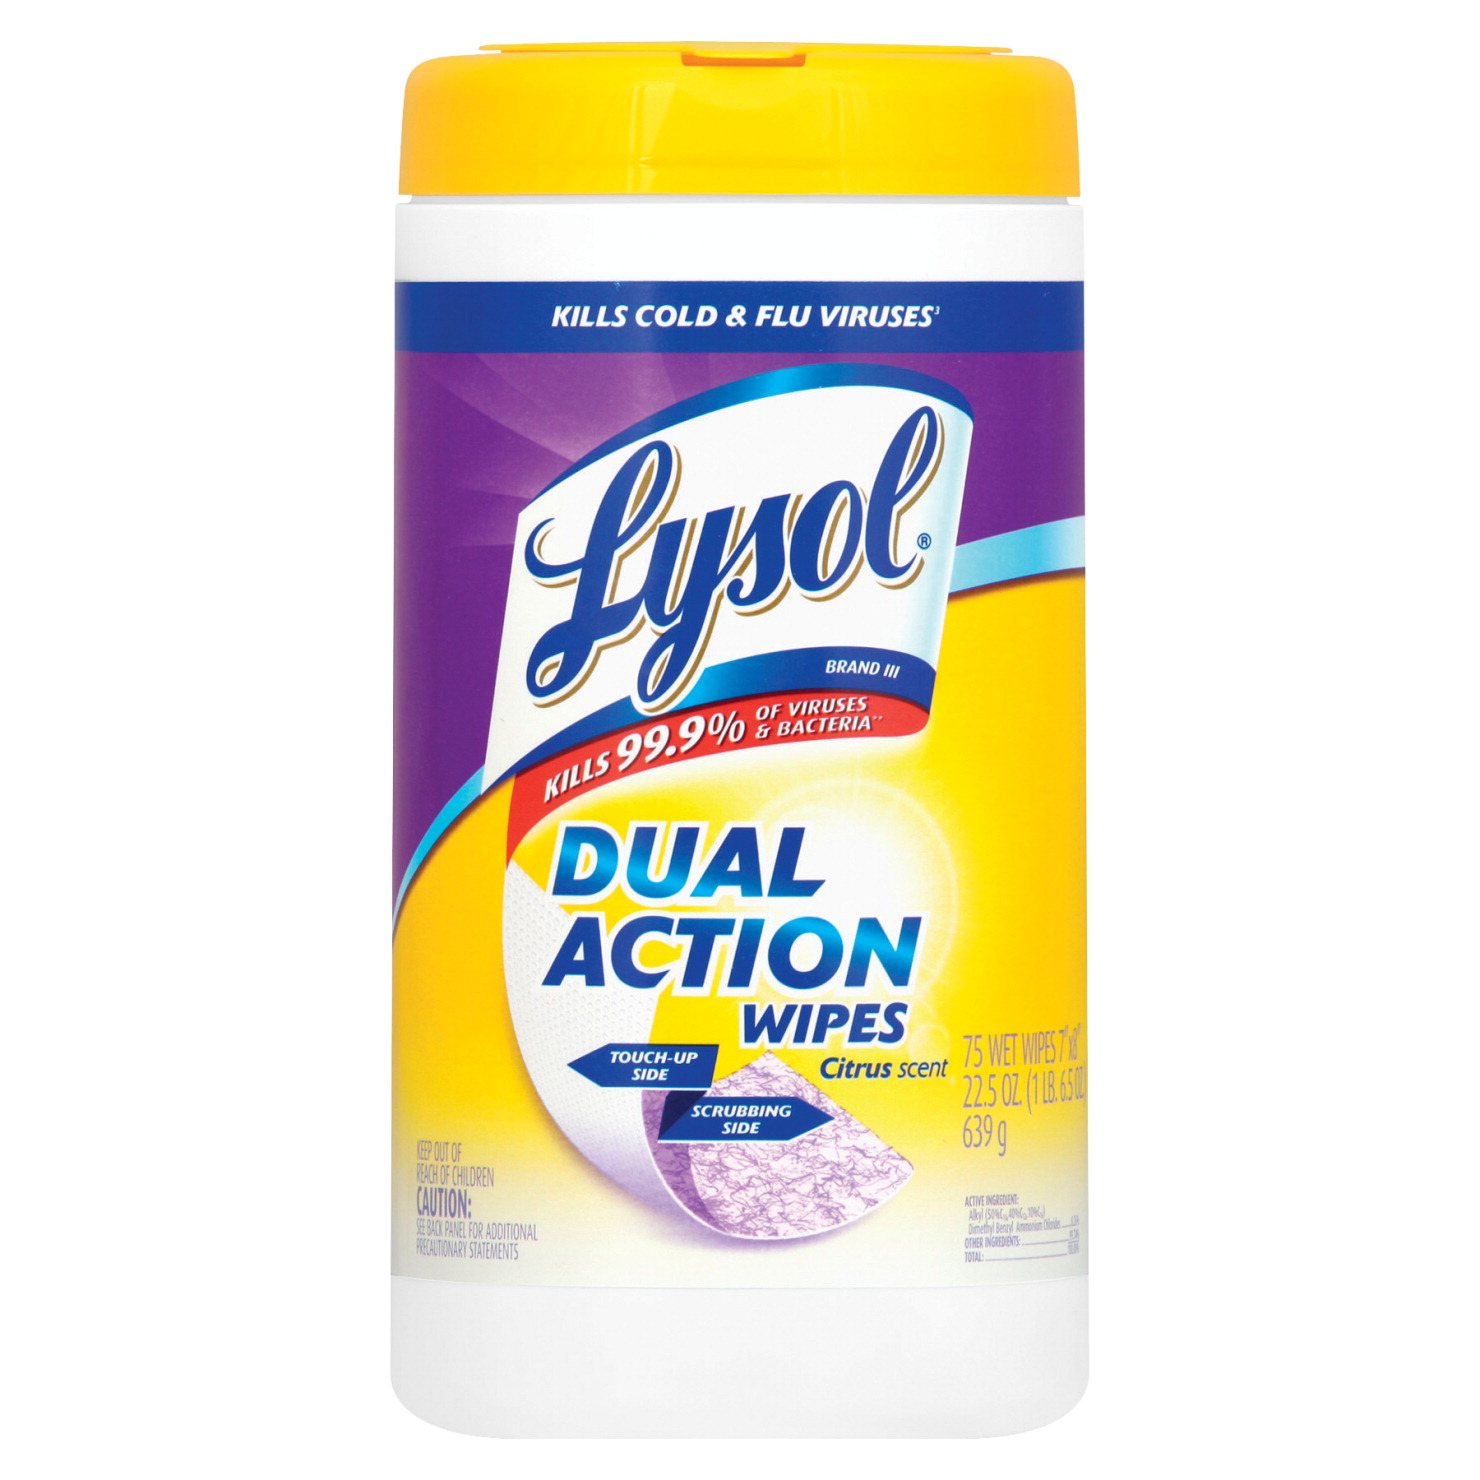 Lysol Dual Action Disinfecting Wipes, Citrus Scent, 75 Wipes